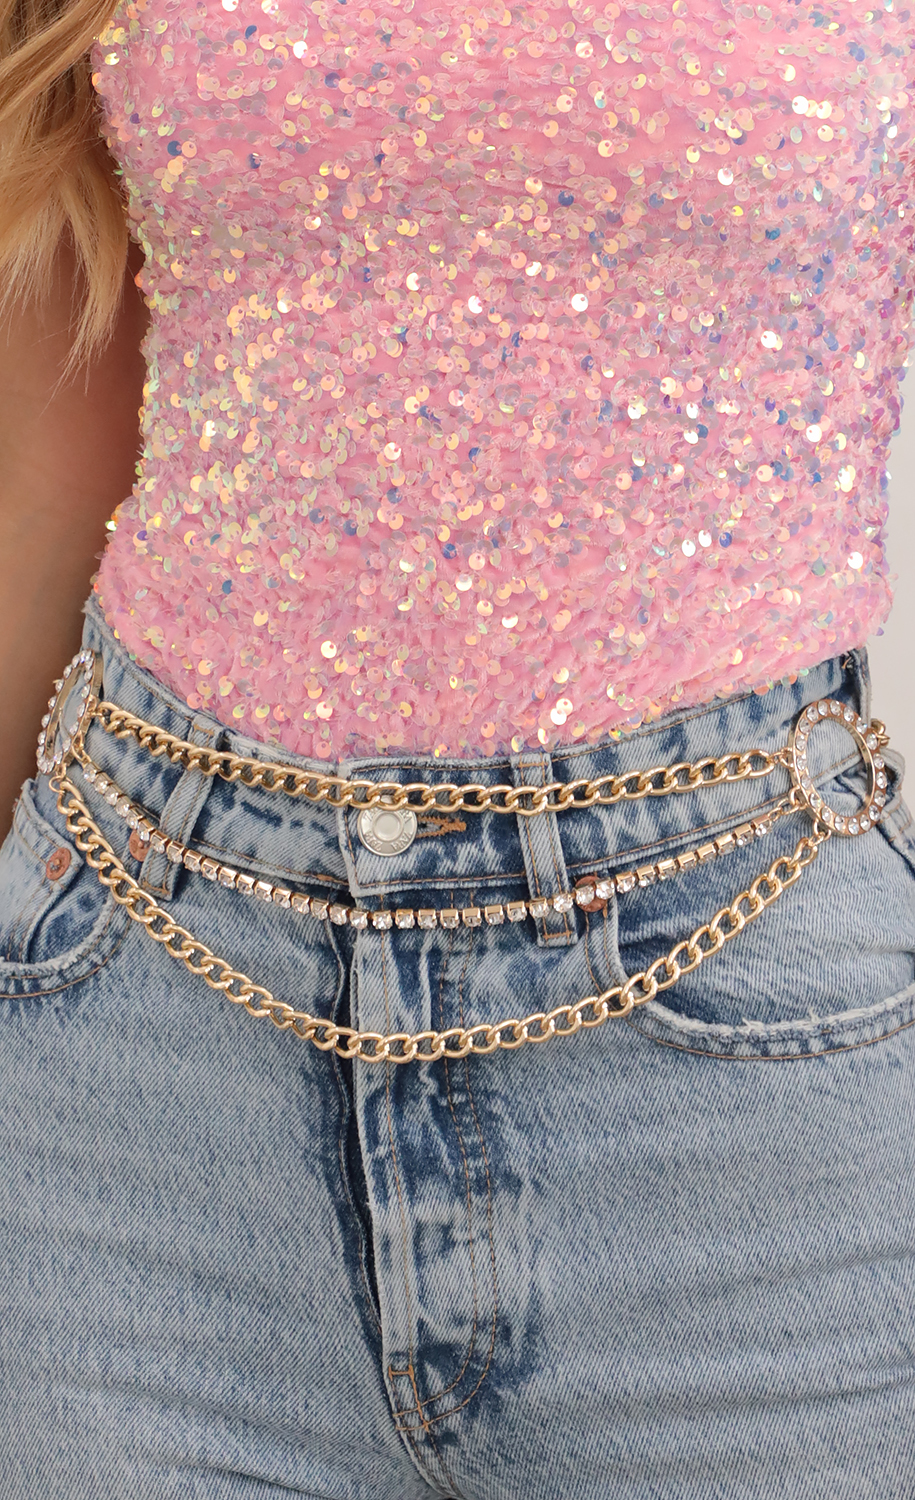 Embellished Chain Layered Belt